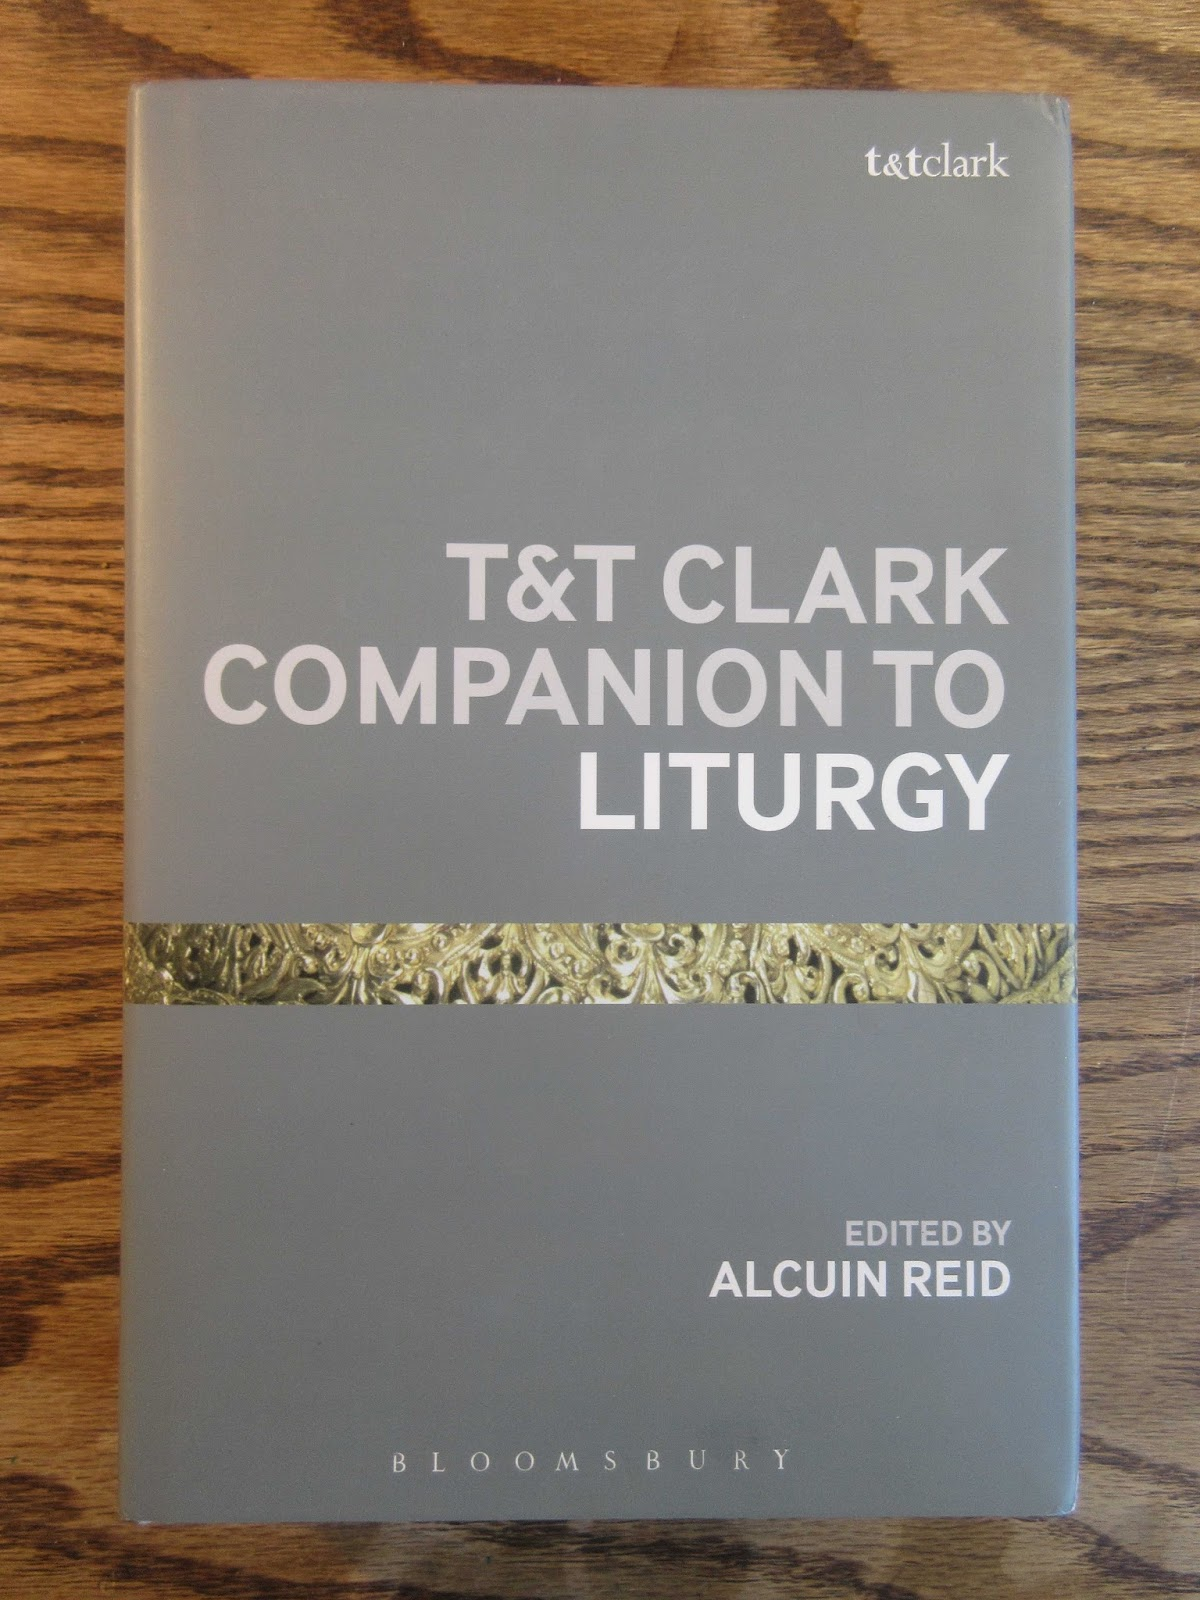 Book Review: T&T Clark Companion to Liturgy